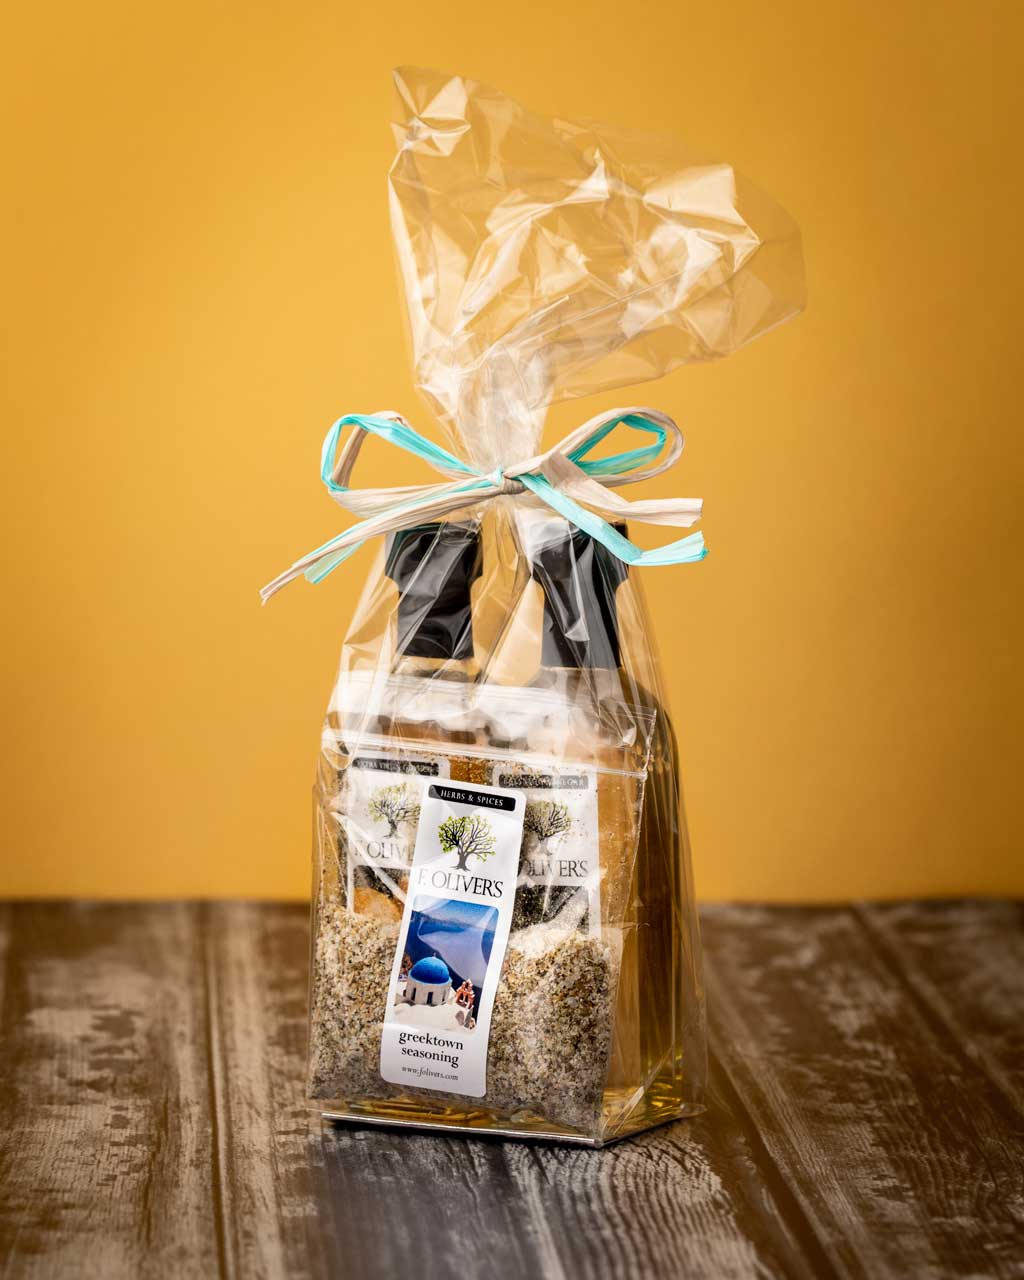 F. Oliver's Greektown Seasoning Wedding Favors